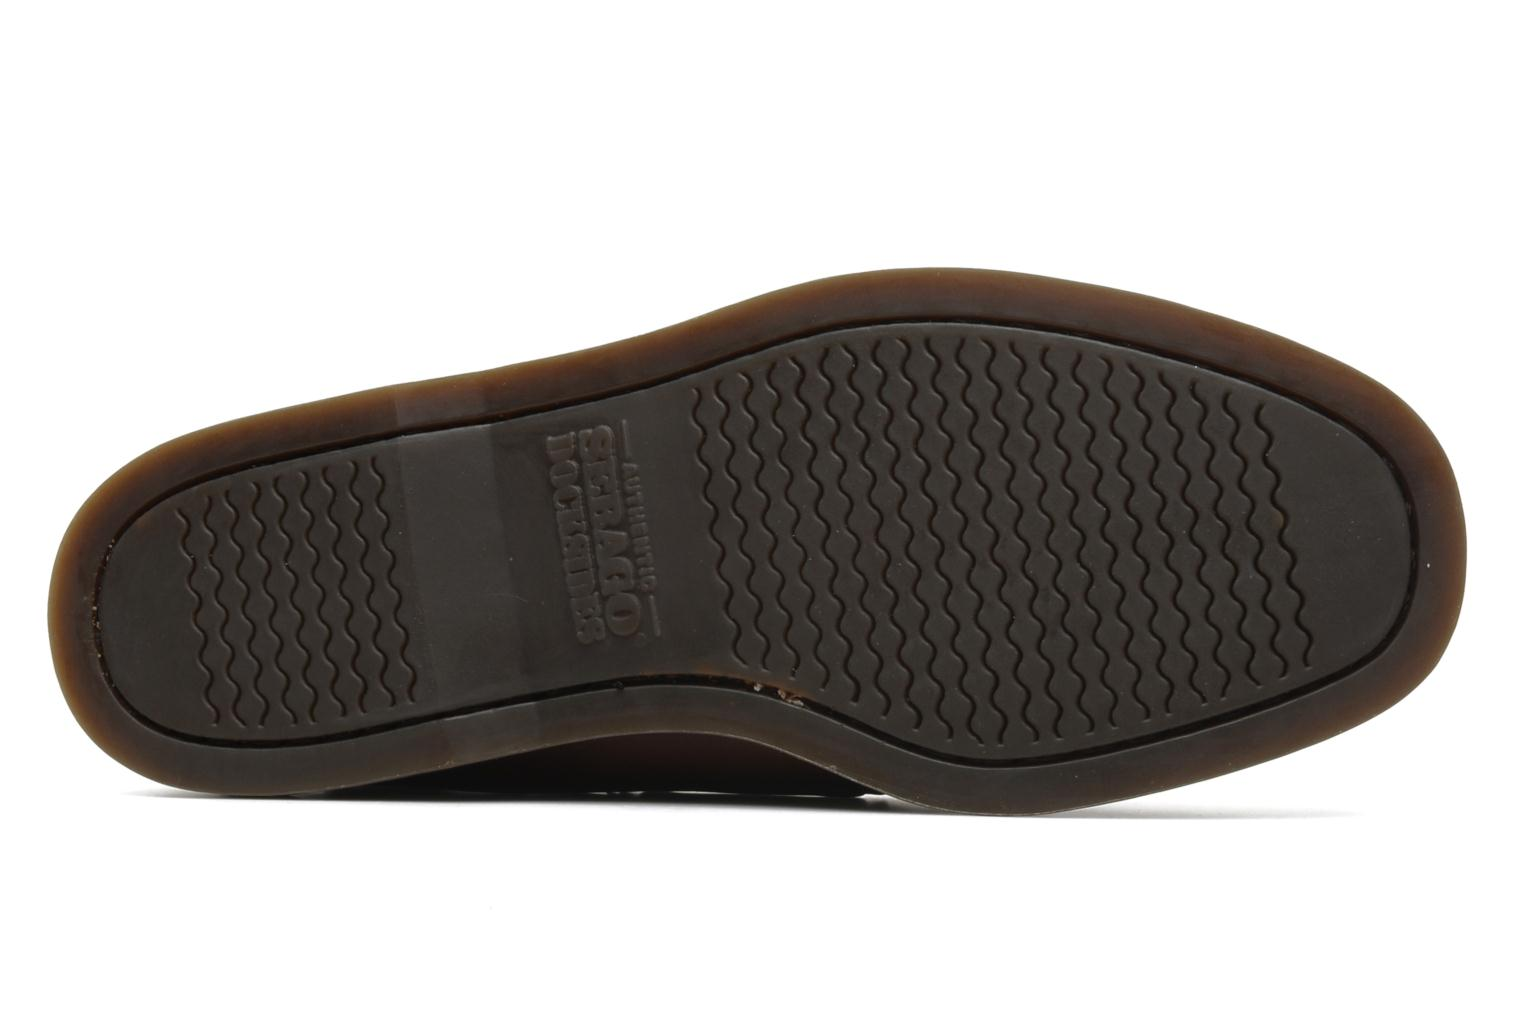 Lace-up shoes Sebago Docksides M Brown view from above